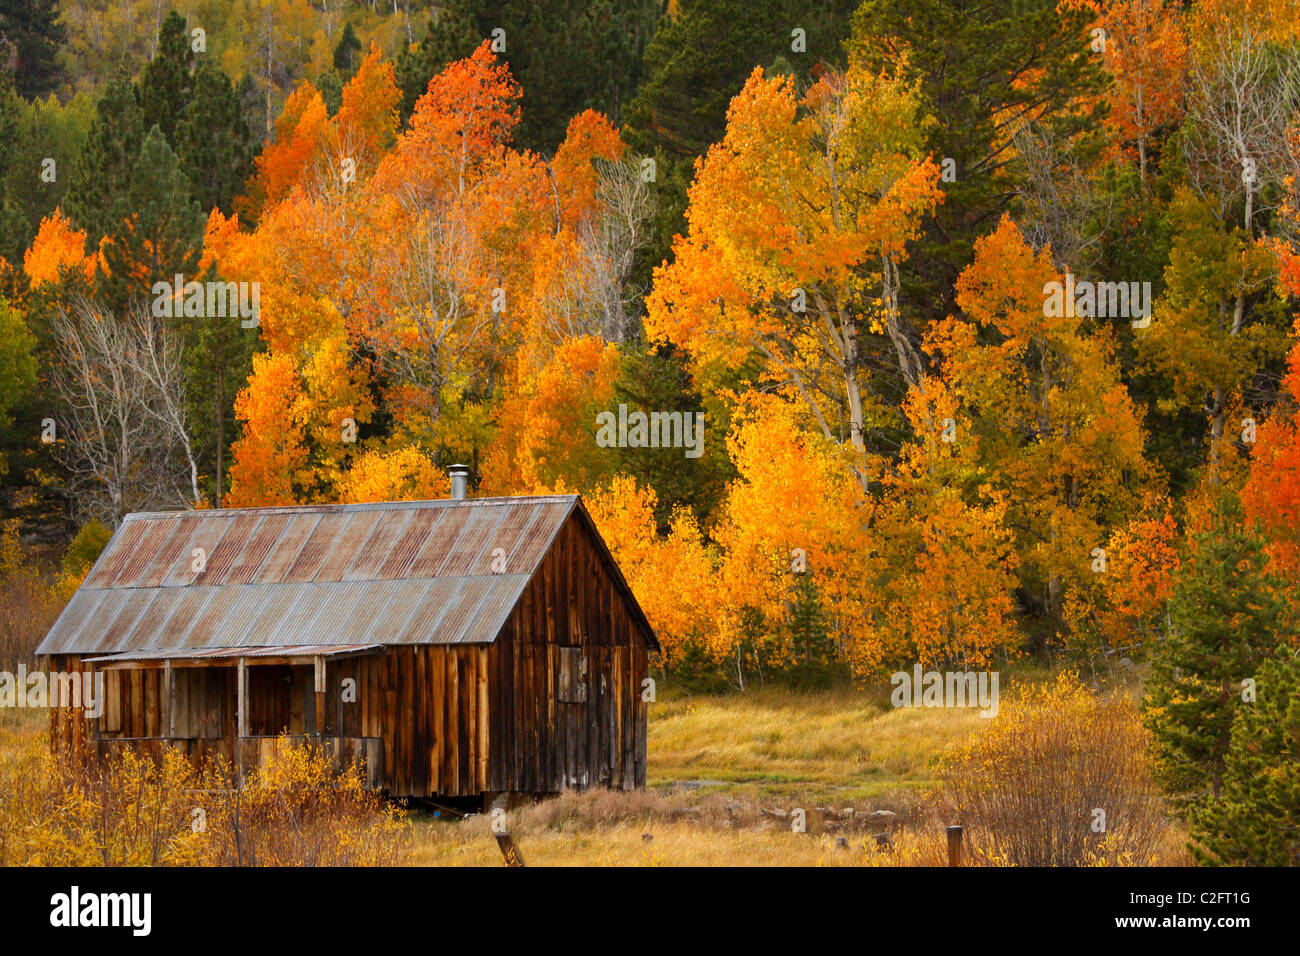 Colorful Fall Scene Wallpaper A Rustic Cabin In Autumn In Hope Valley In The Sierra